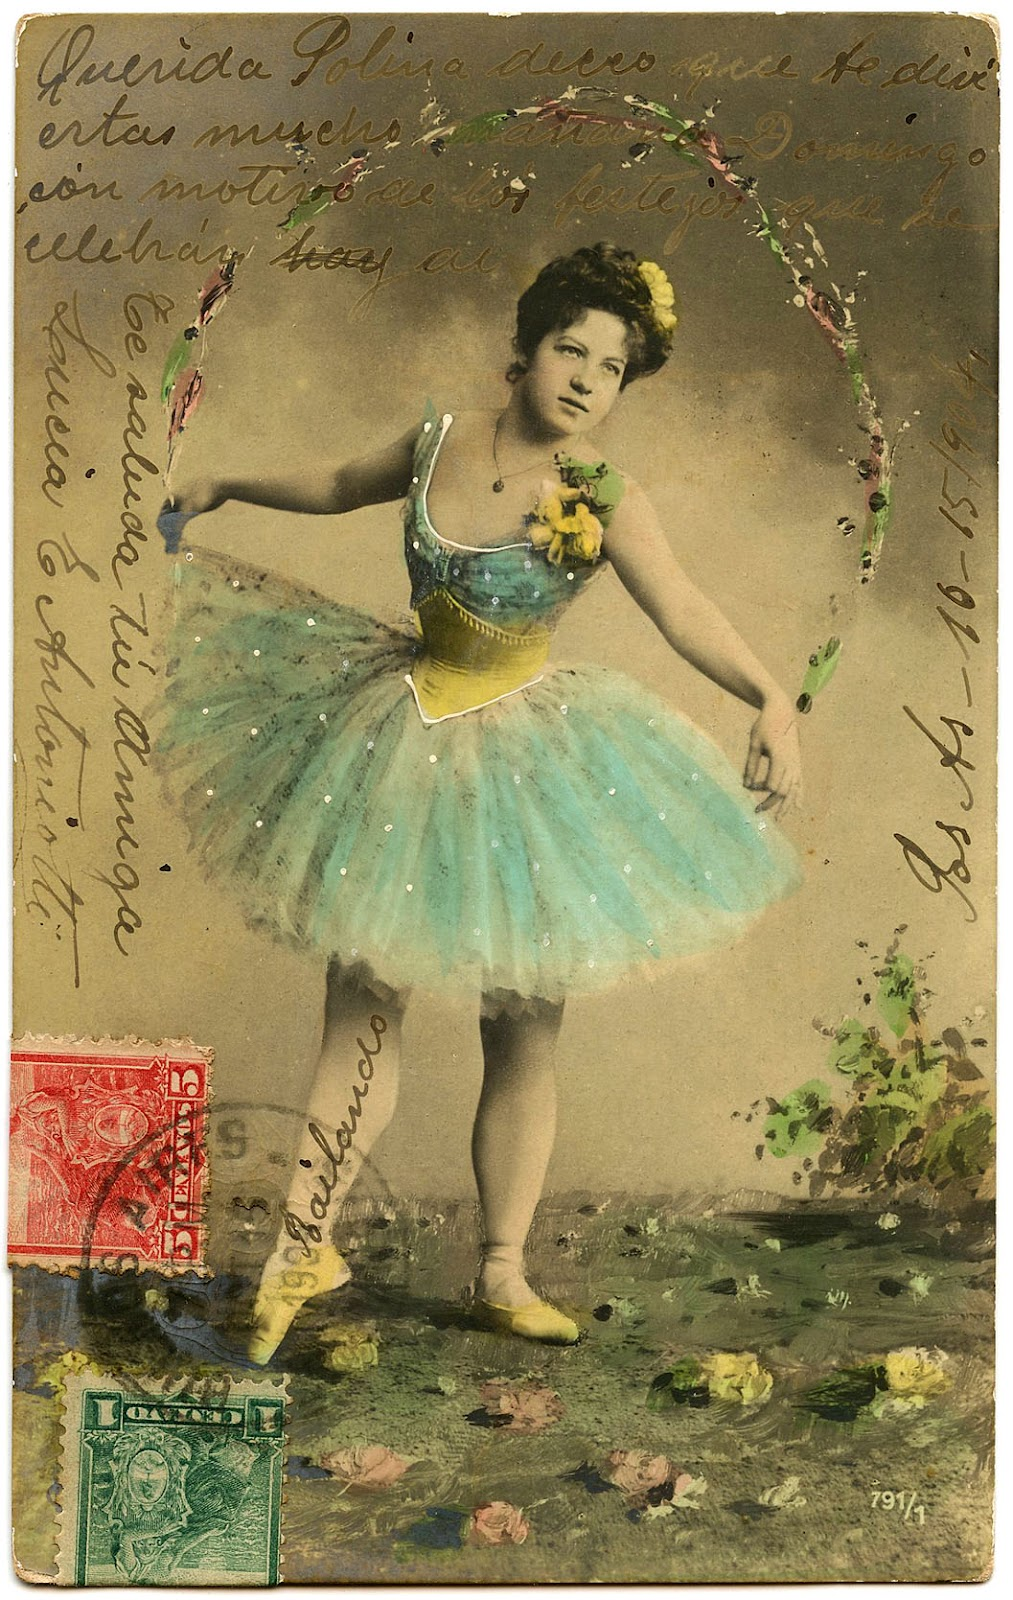 Antique Angel Photo - Beauty! - The Graphics Fairy